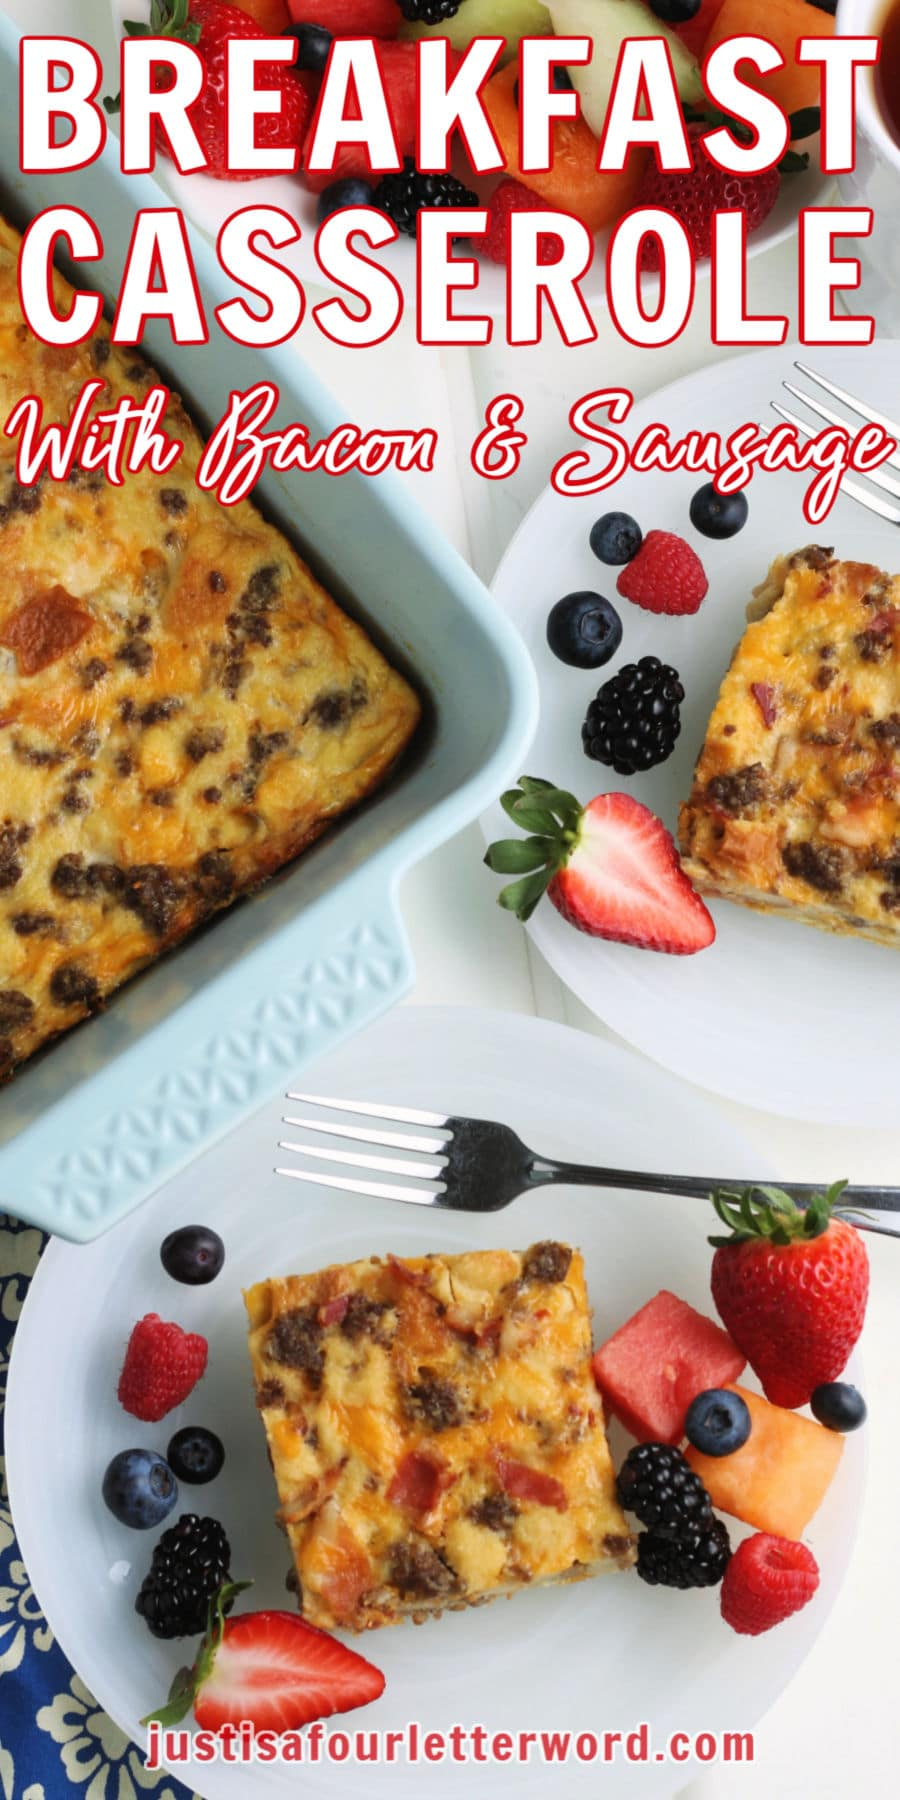 overnight breakfast casserole with bacon and sausage